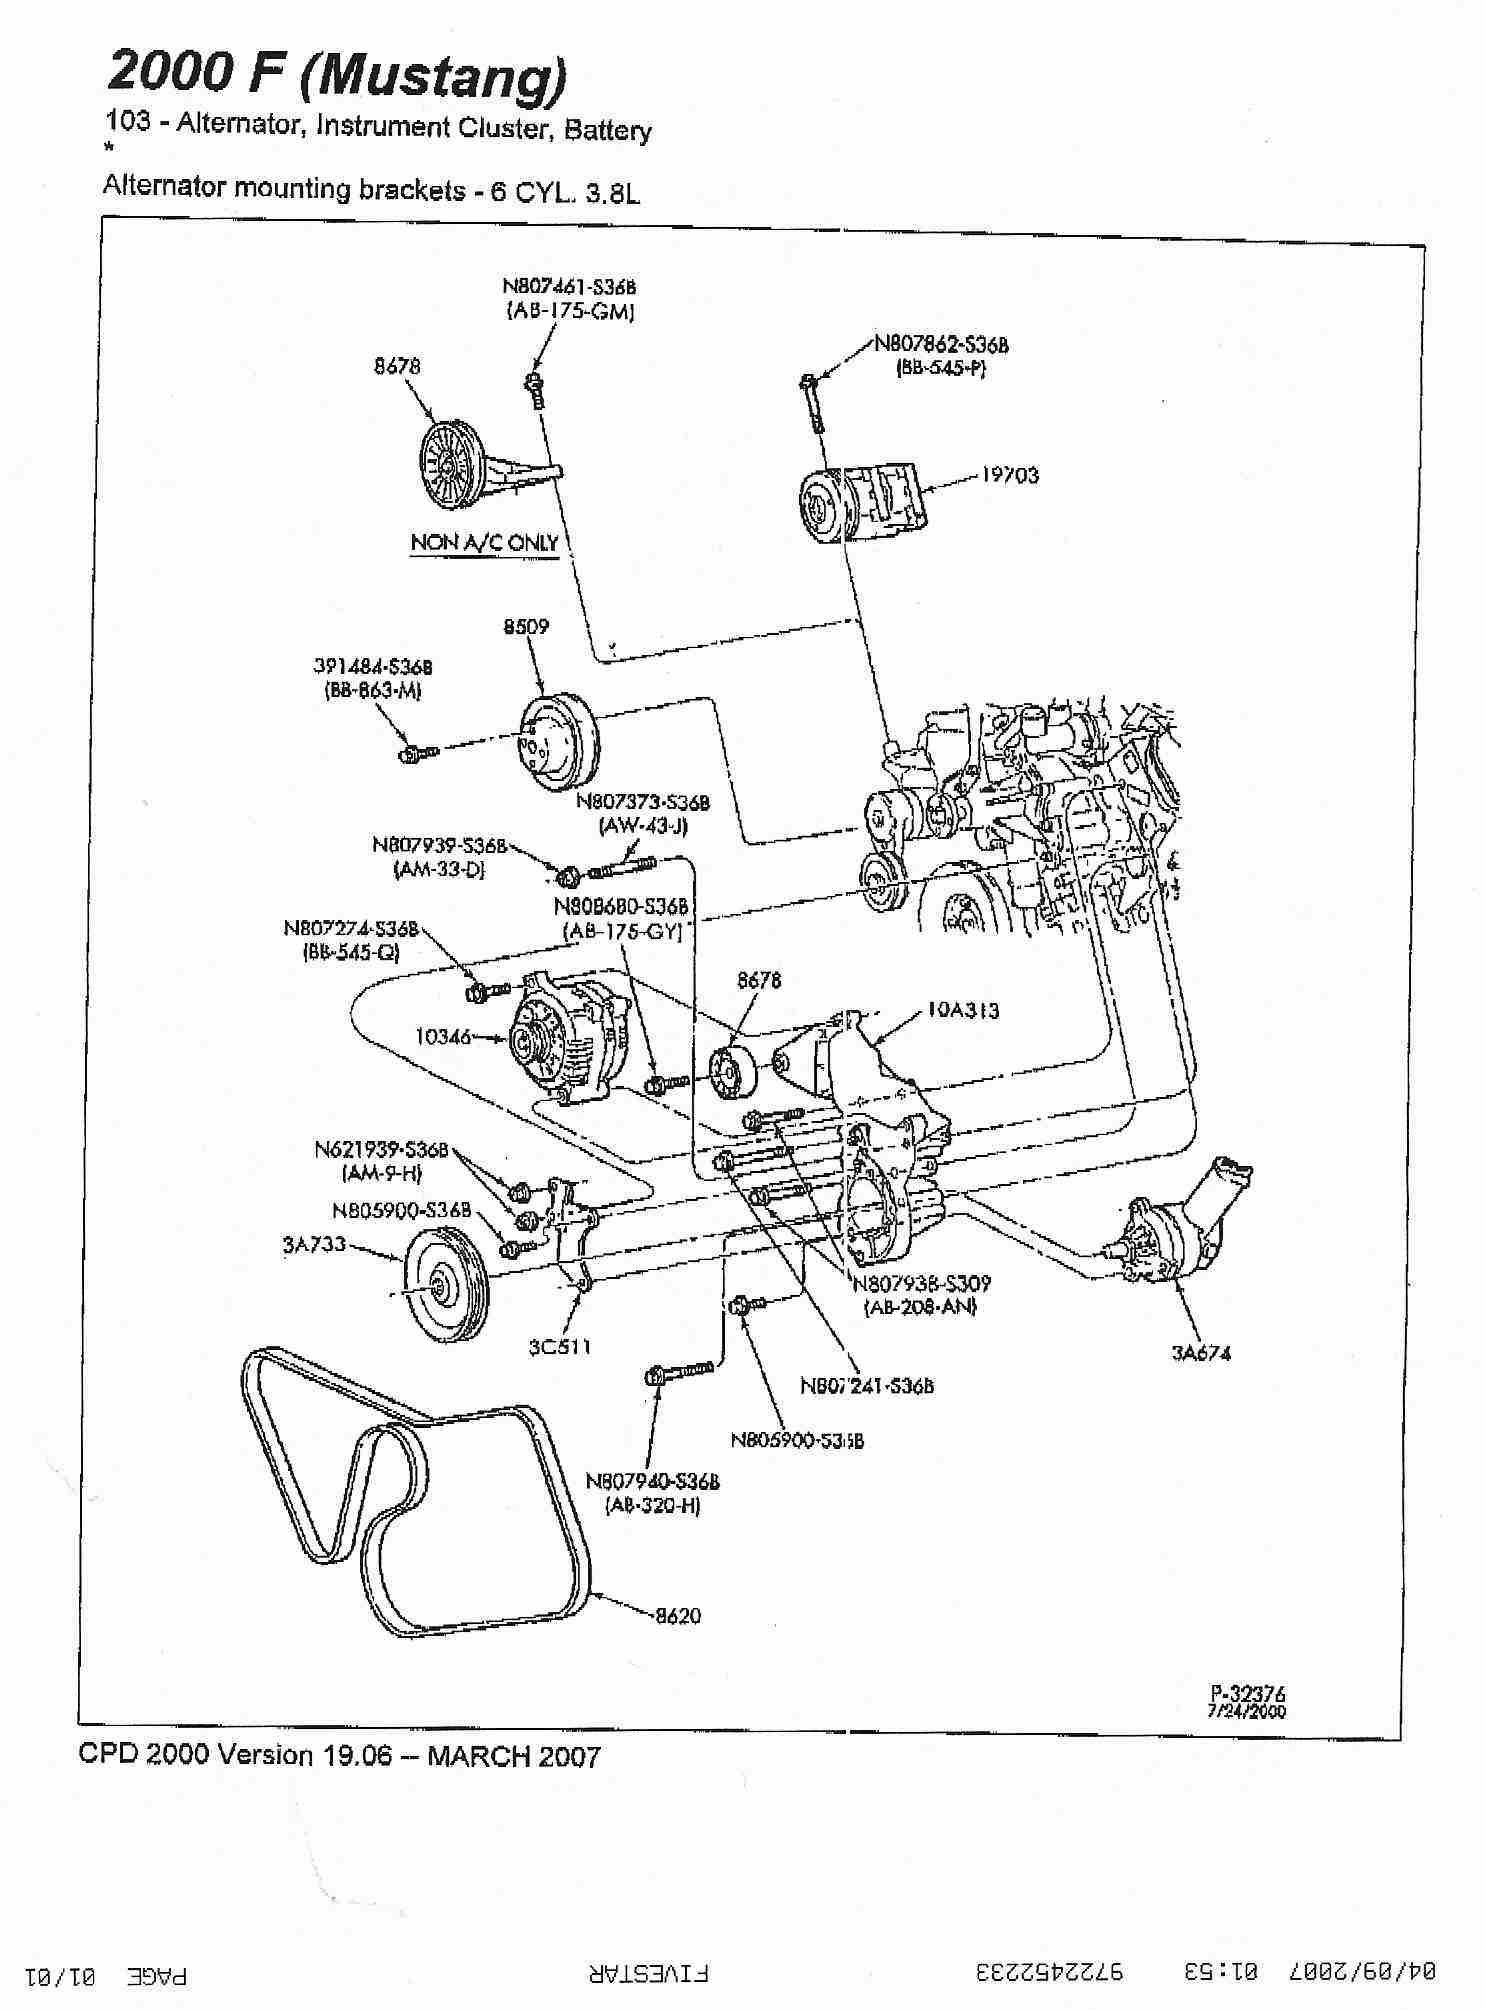 1999 F250 Engine Diagram Archive Of Automotive Wiring 2000 Ford F 250 Alternator 4 6l Mustang Opinions About U2022 Rh Voterid Co